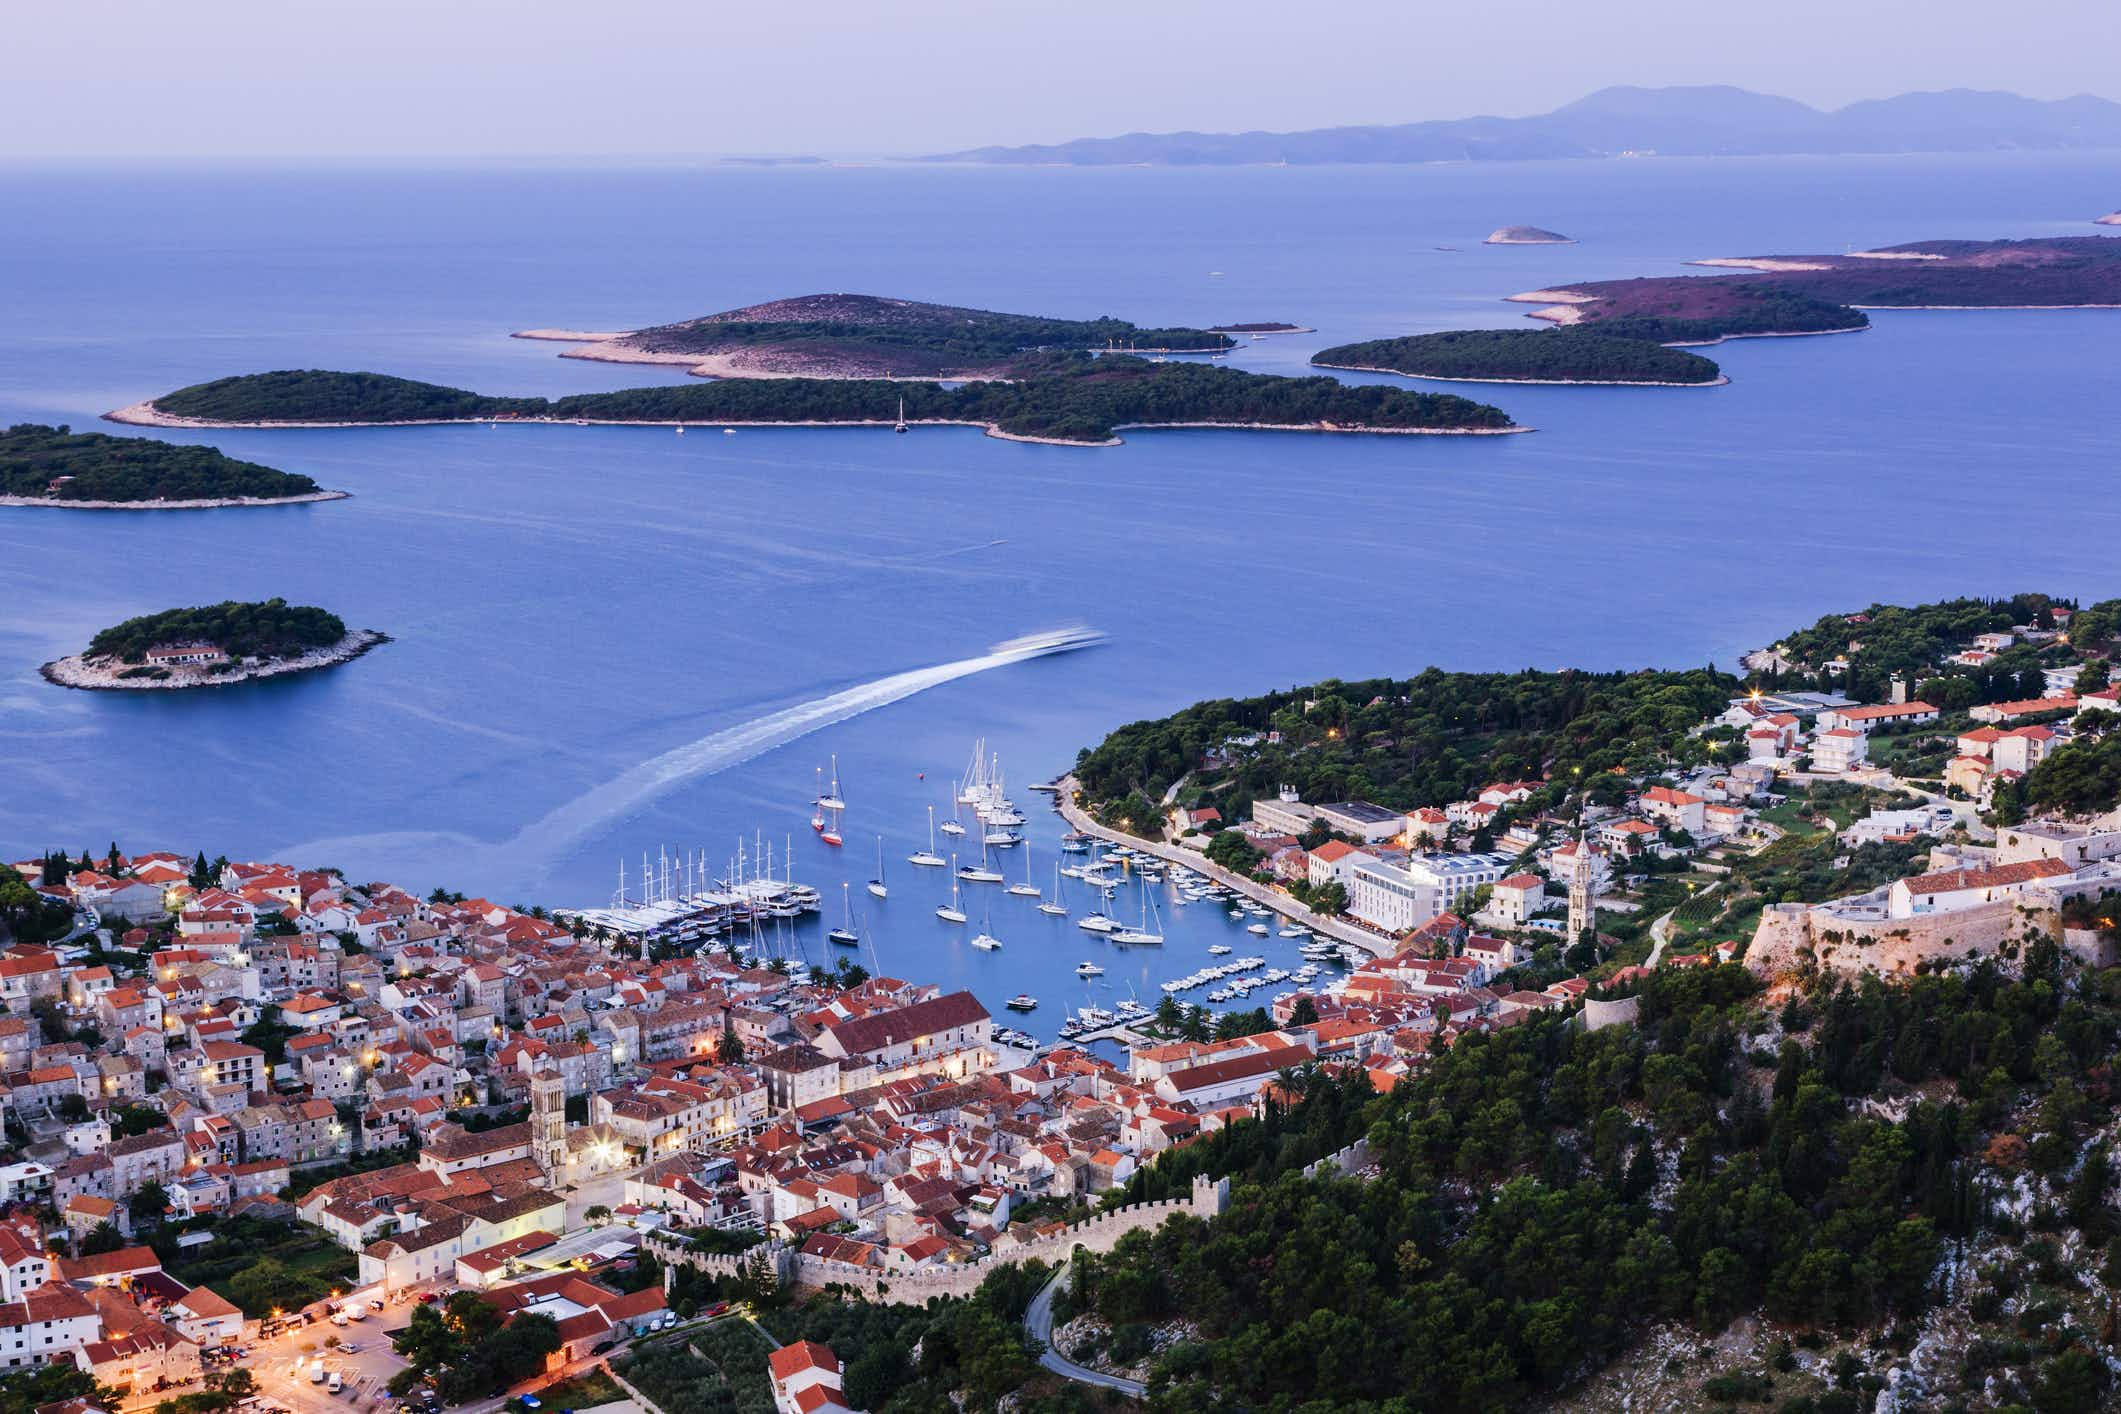 Hvar Town warns tourists of hefty fines for bad behaviour as it moves to protect its glamourous image